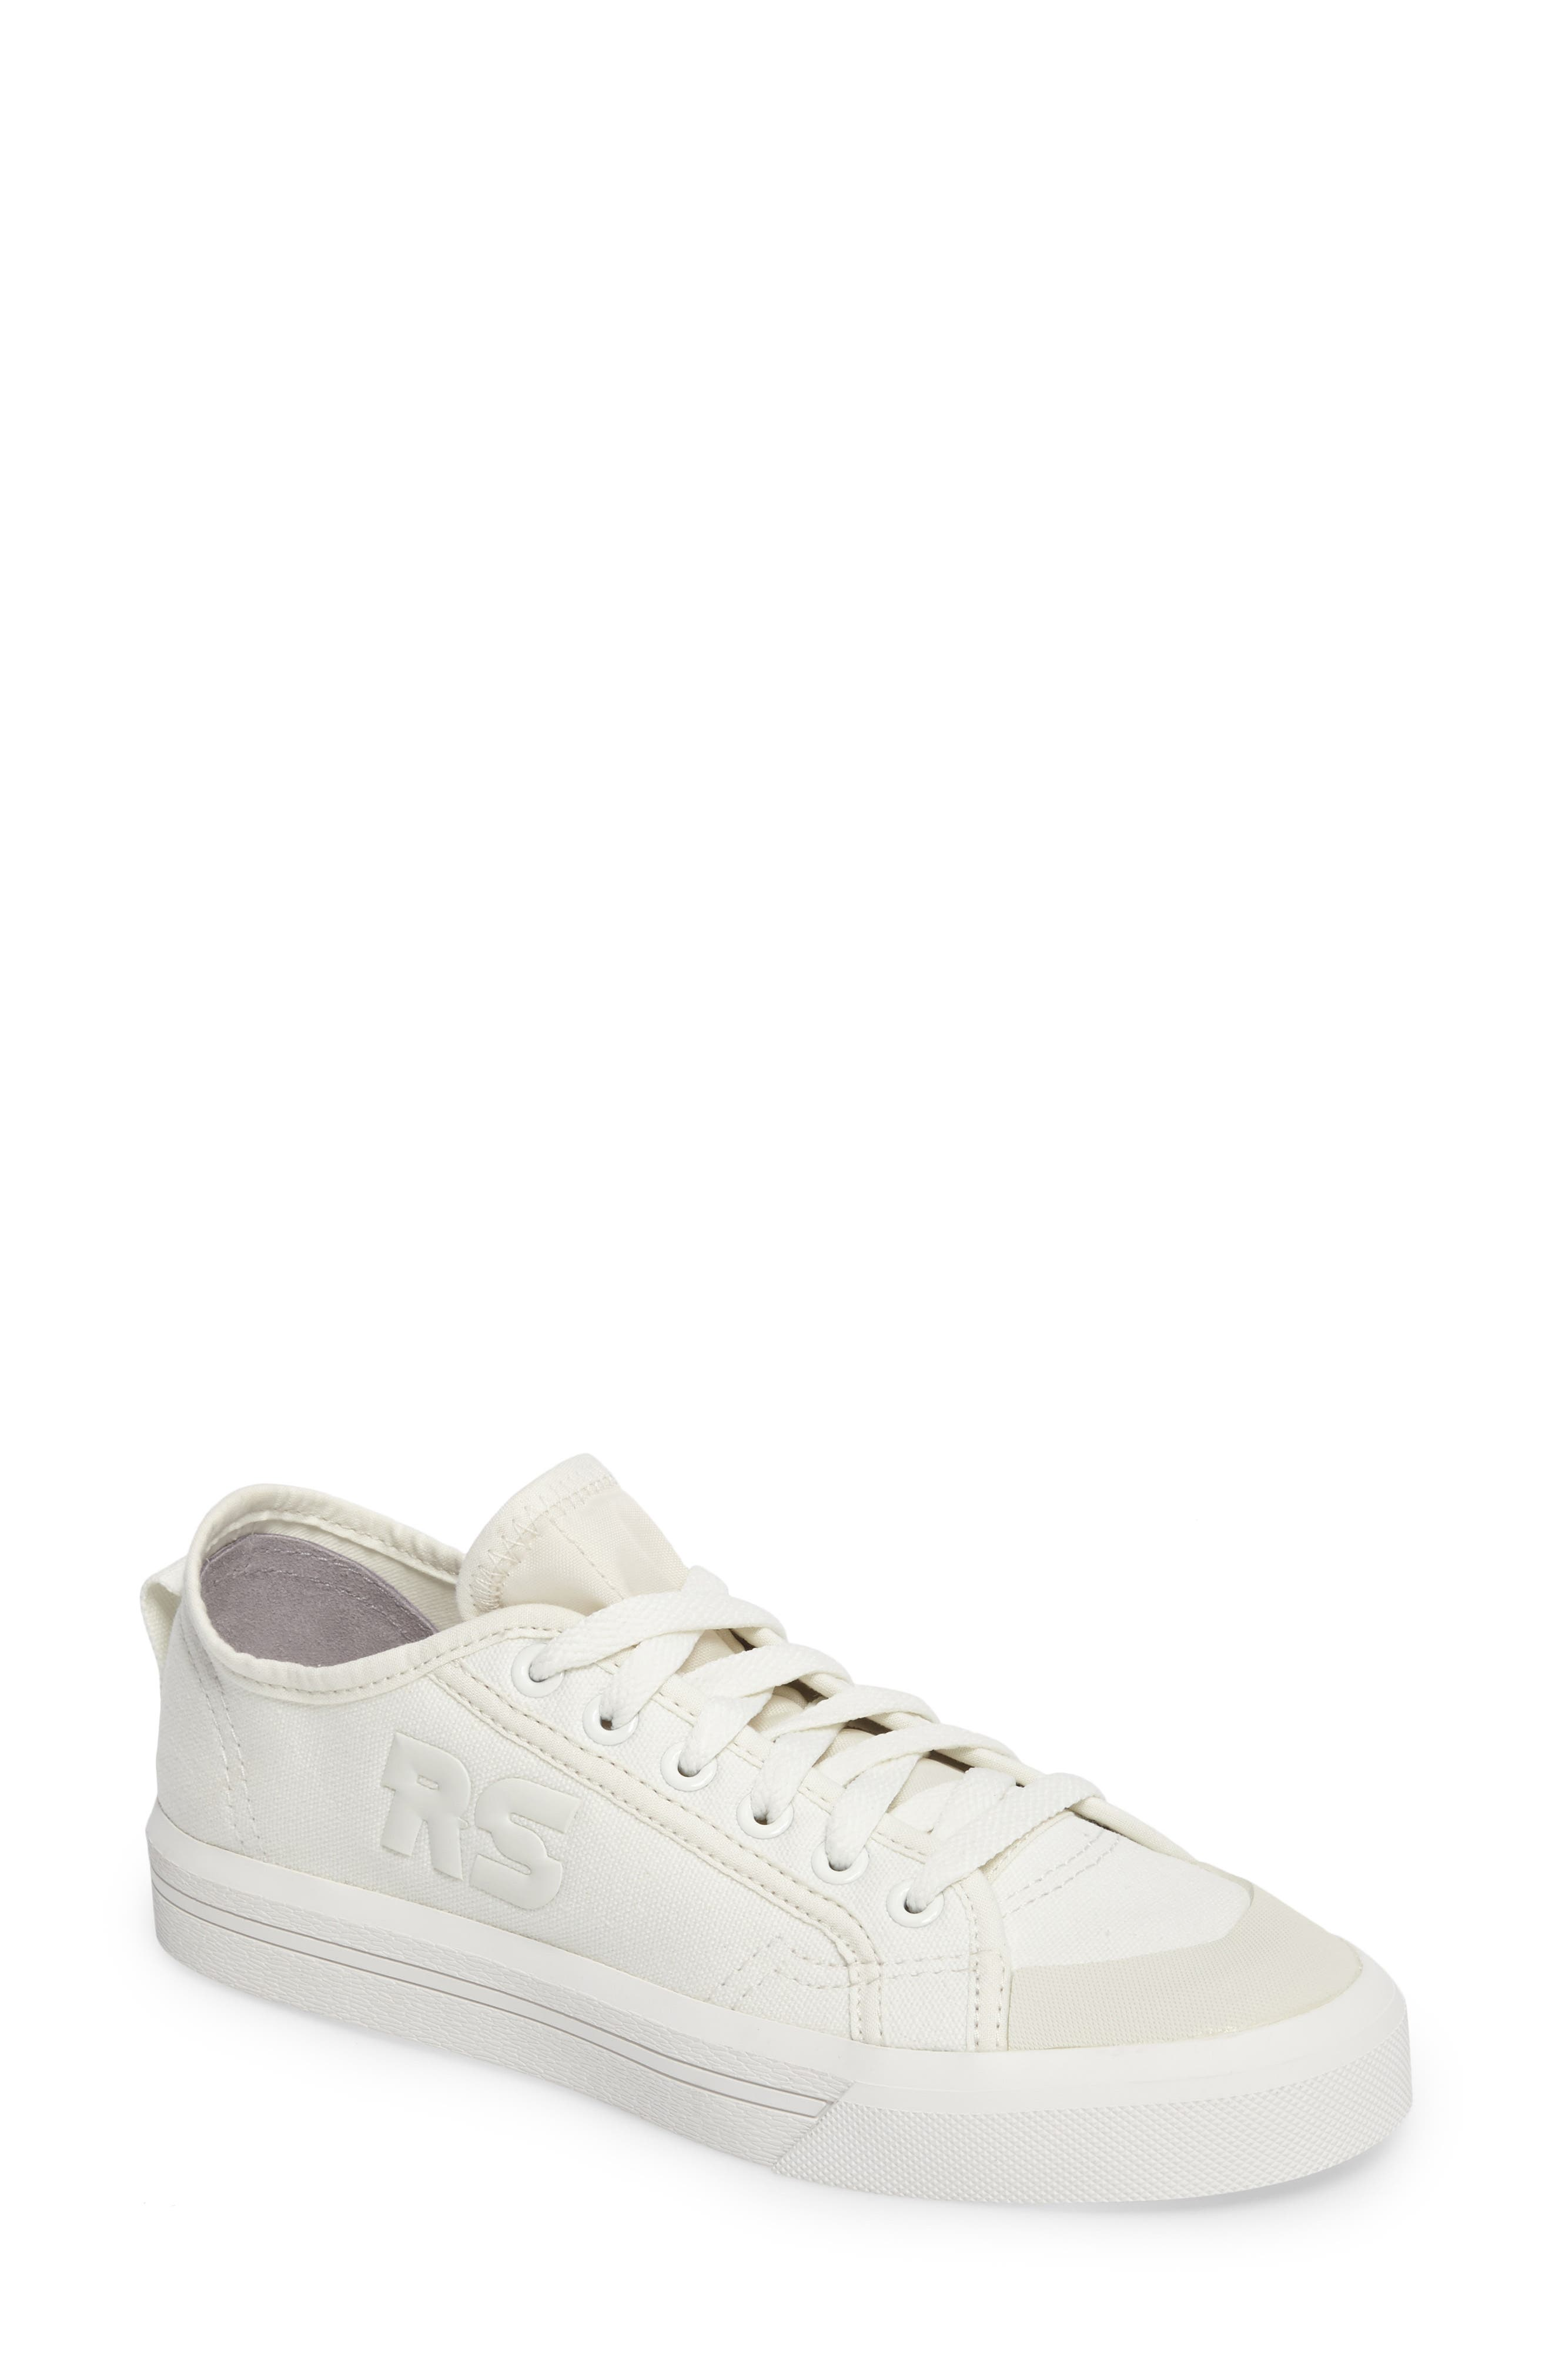 adidas by Raf Simons Spirit Low Top Sneaker,                         Main,                         color, Optic White